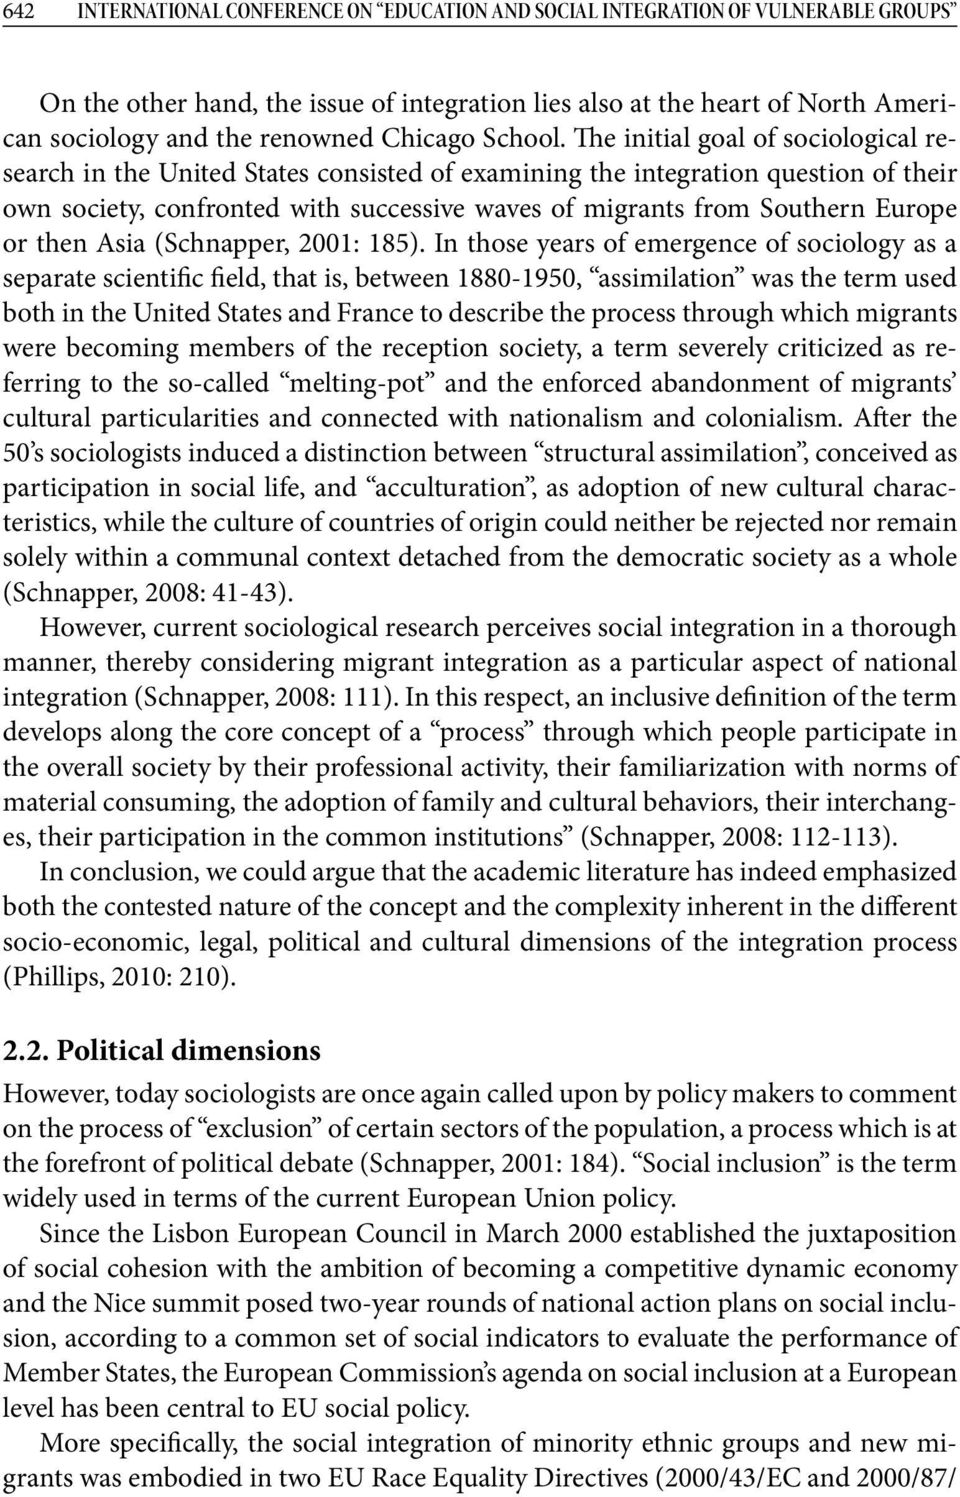 The initial goal of sociological research in the United States consisted of examining the integration question of their own society, confronted with successive waves of migrants from Southern Europe